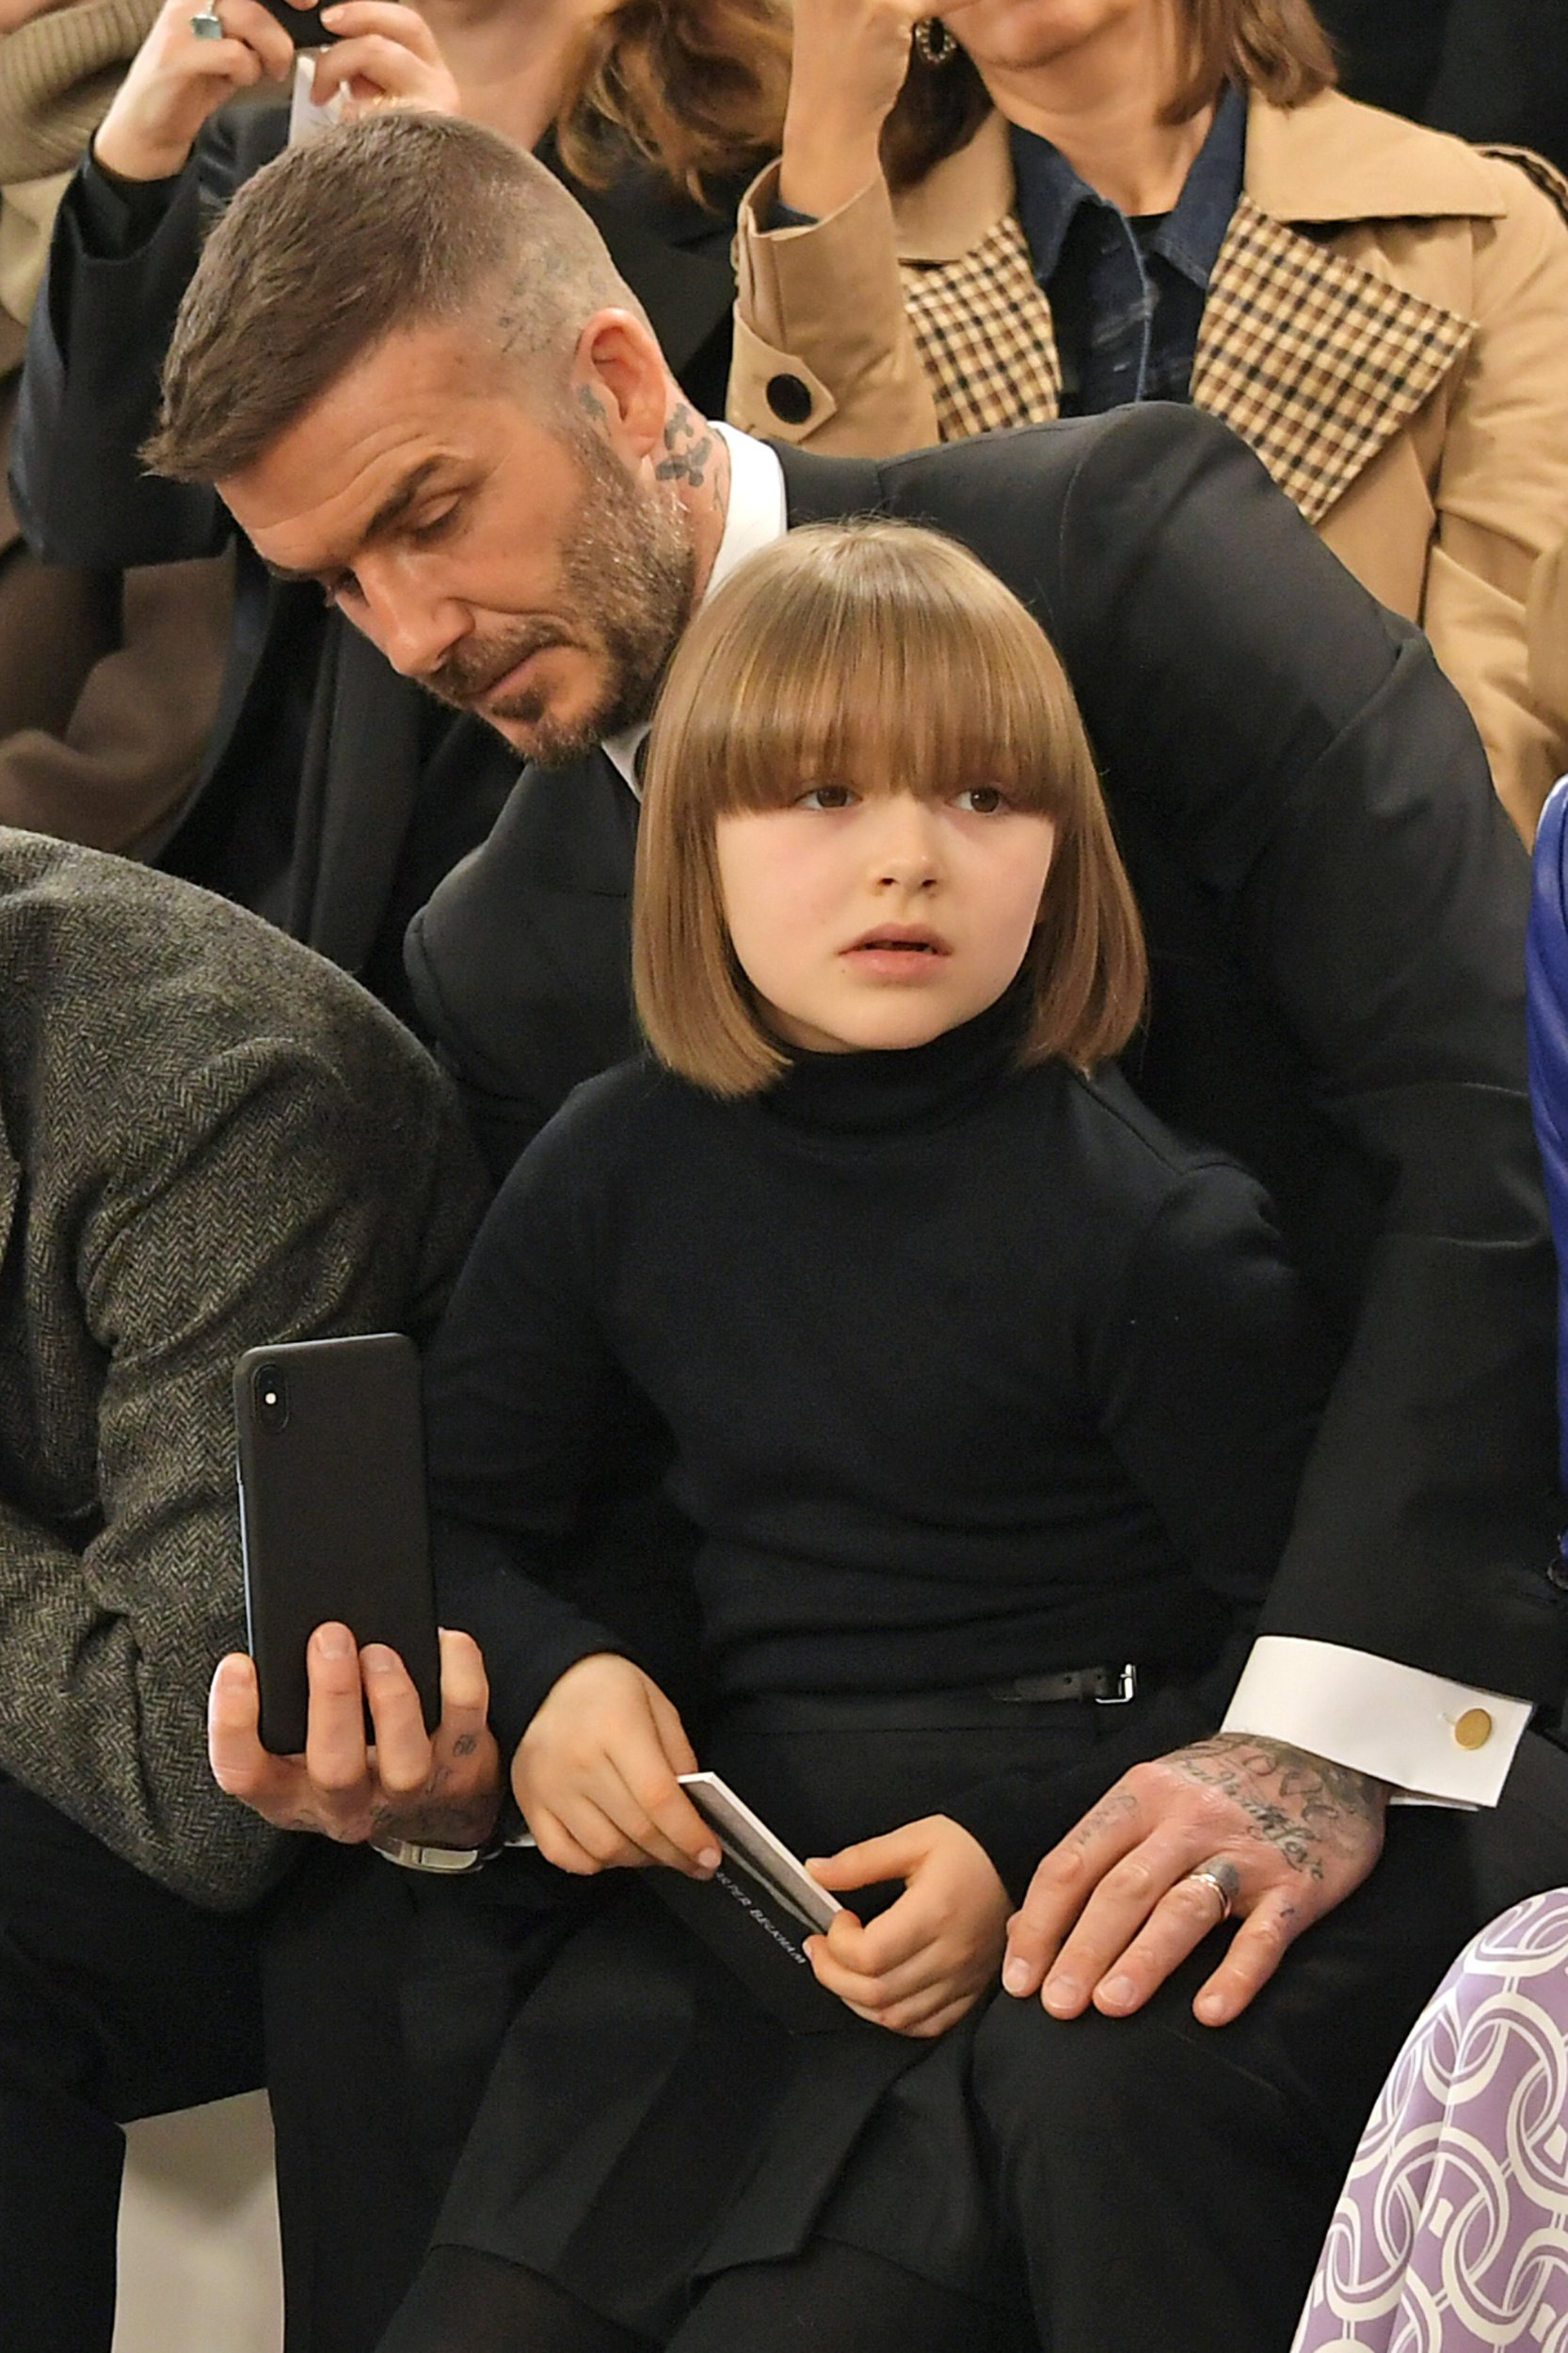 LONDON, ENGLAND - FEBRUARY 17: David Beckham and Harper Beckham attend the Victoria Beckham show during London Fashion Week February 2019 at Tate Britain on February 17, 2019 in London, England. (Photo by David M. Benett/Dave Benett/Getty Images)